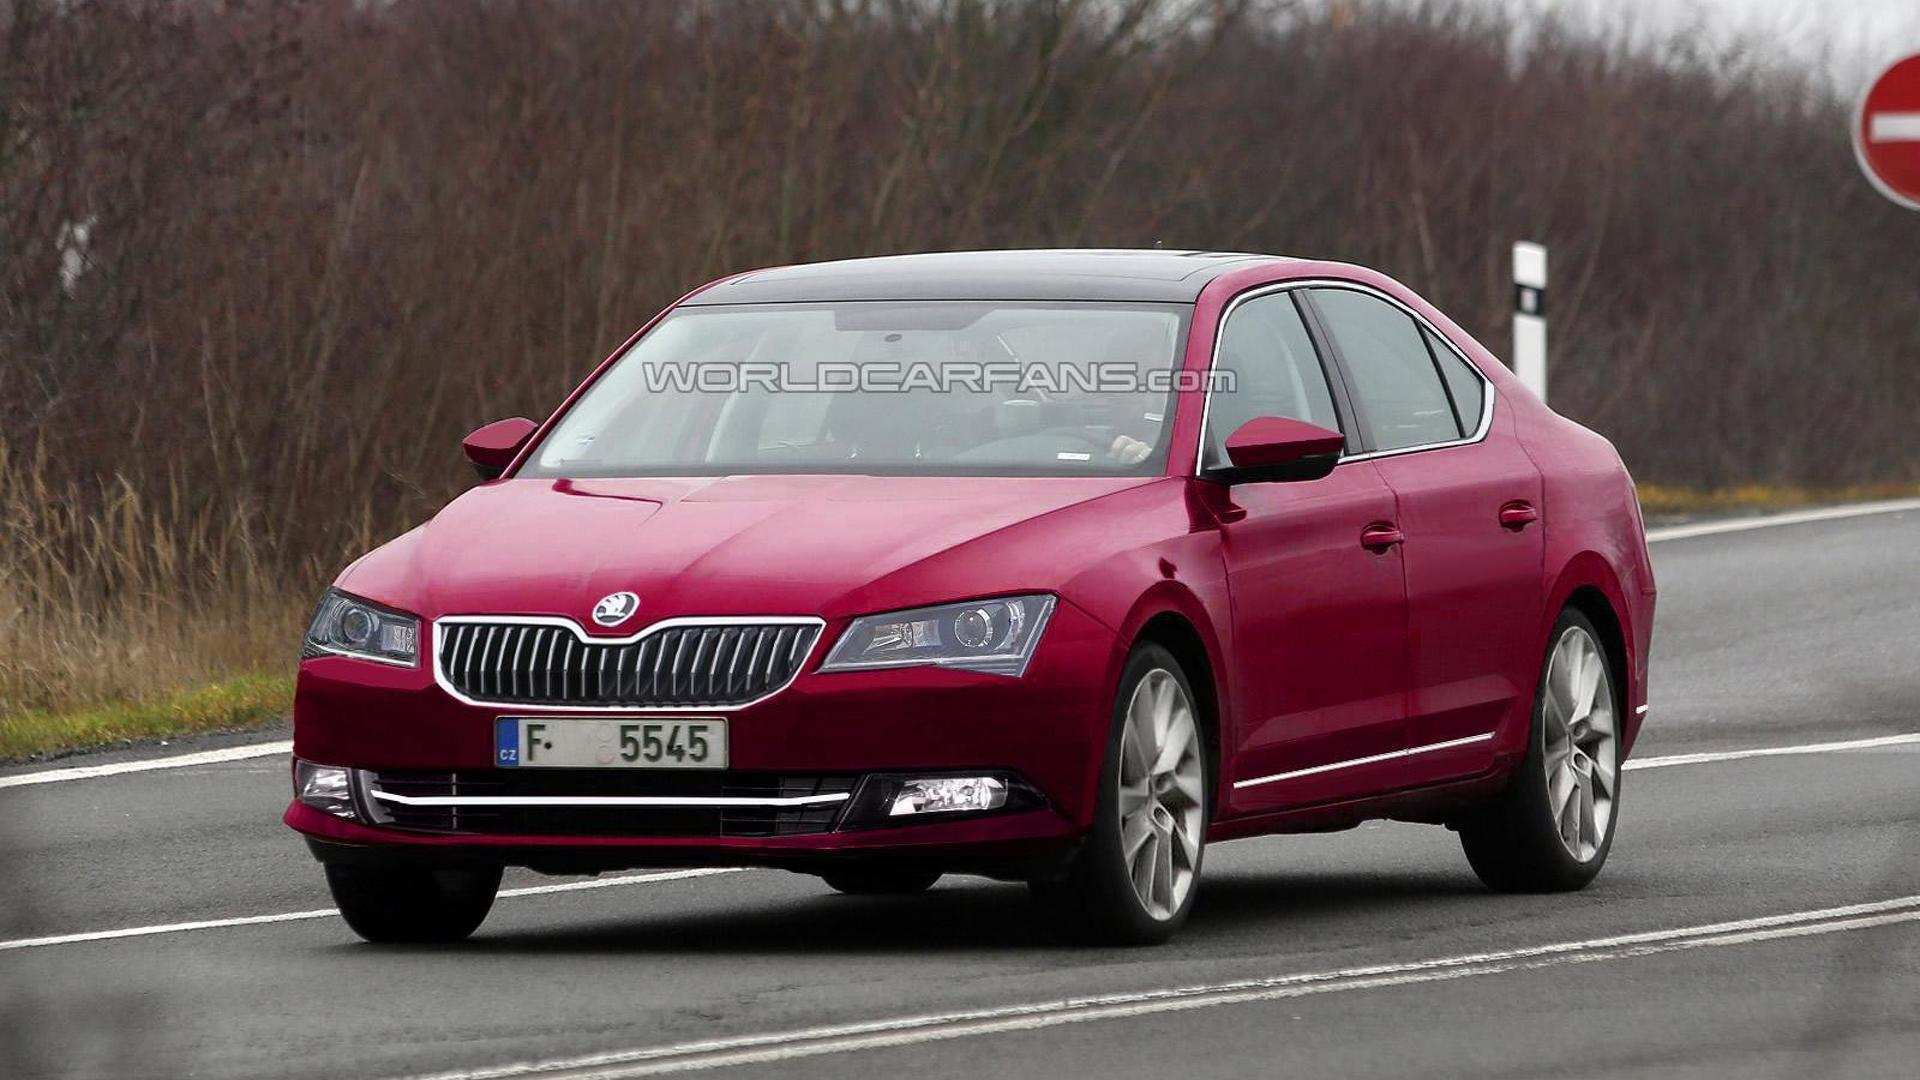 76 A Spy Shots Skoda Superb Model